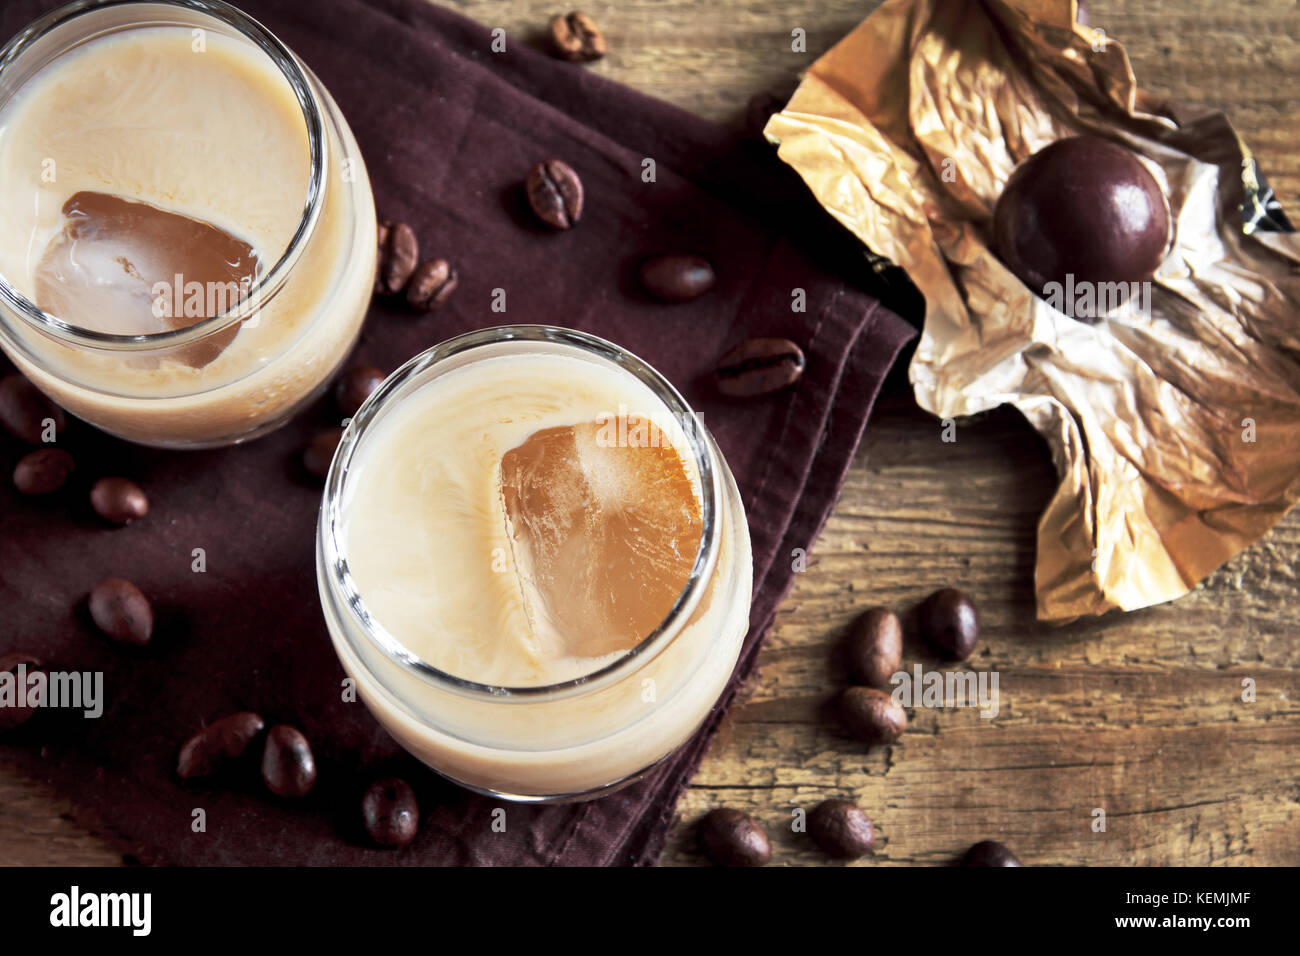 Irish cream coffee liqueur with ice, chocolate candies and coffee beans over rustic wooden background - homemade - Stock Image